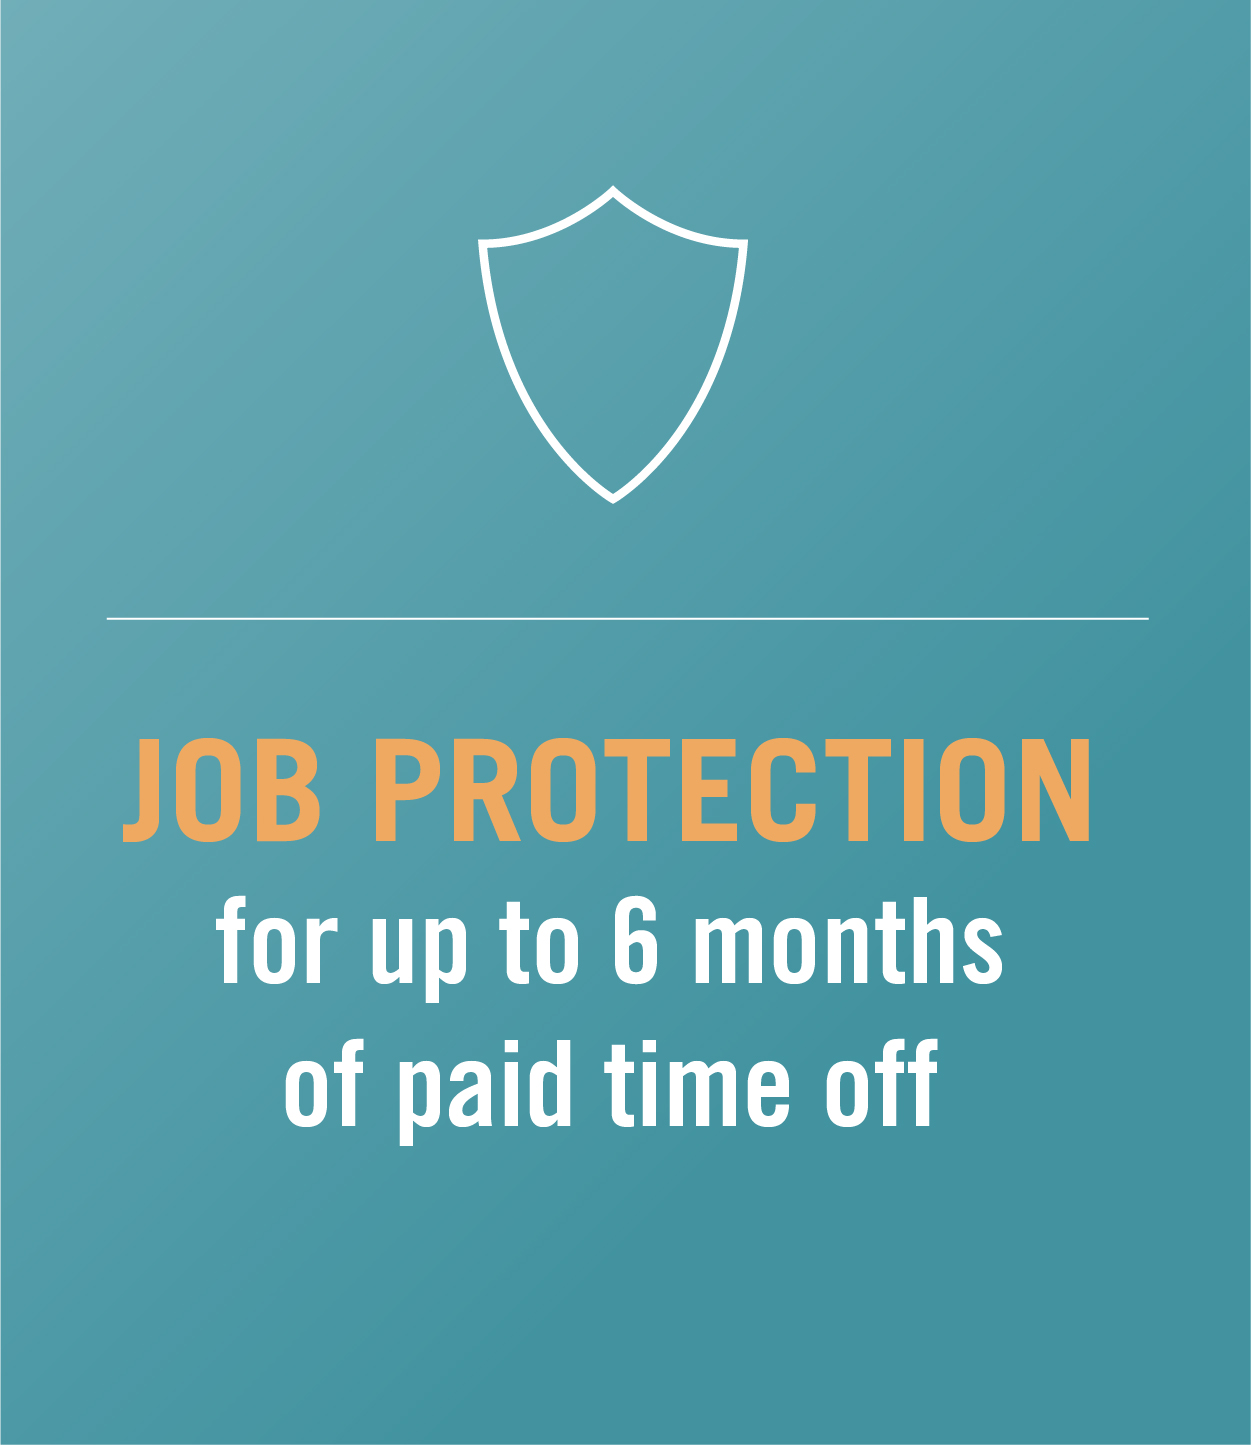 job protection for up to 6 months of paid time off